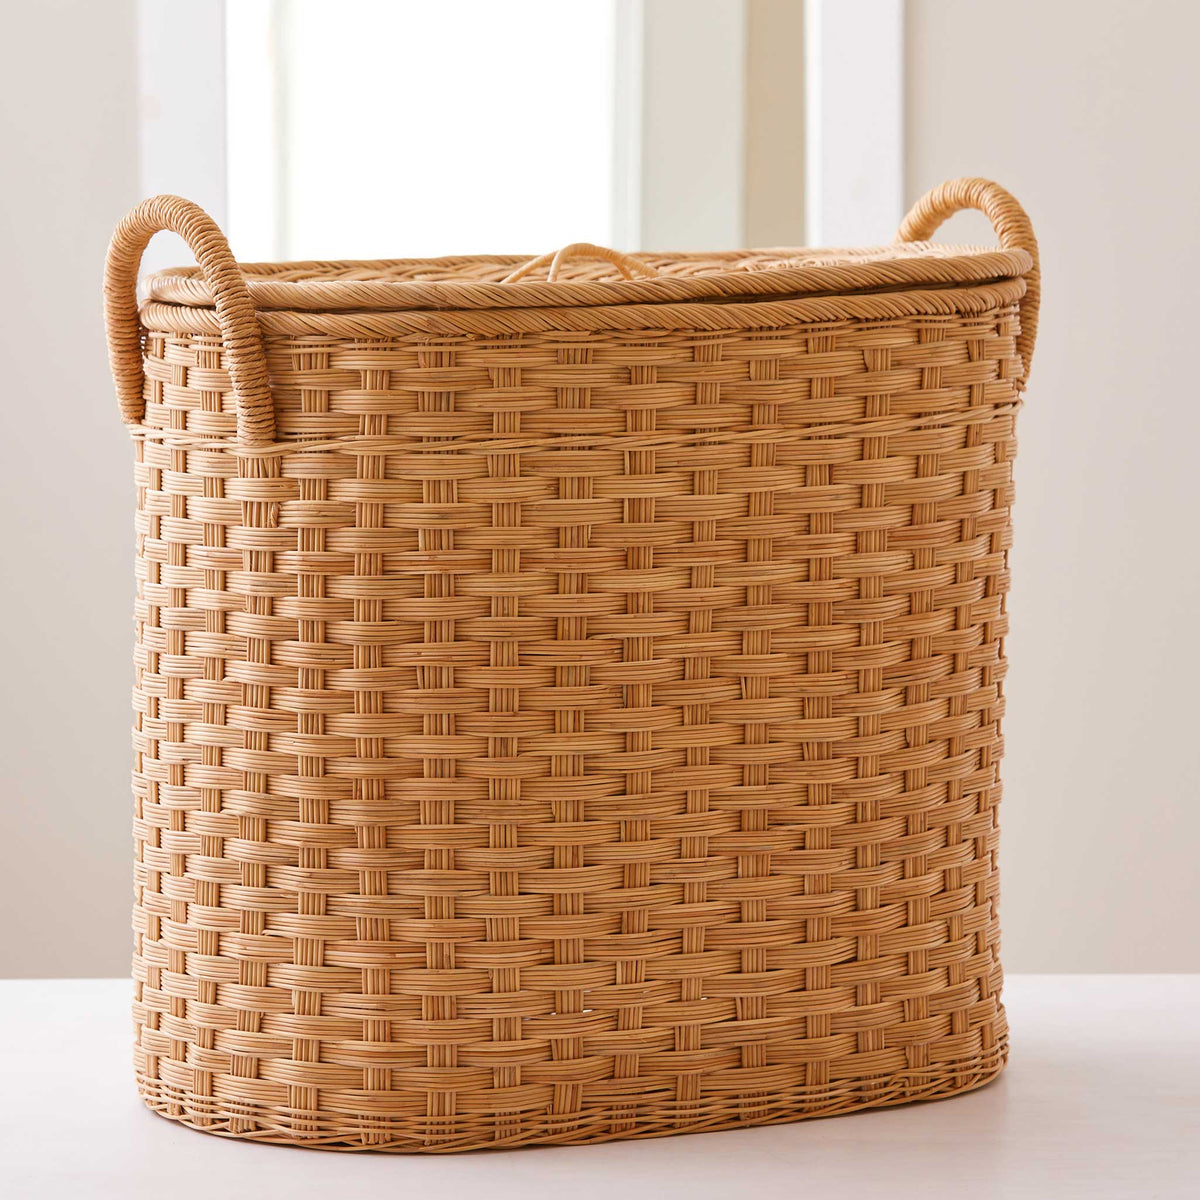 Oval rattan storage basket. Unique storage baskets with lids & handles. 5 sizes. Extra Large basket shown. Great basket for storage. XL, L, M, S, XS.